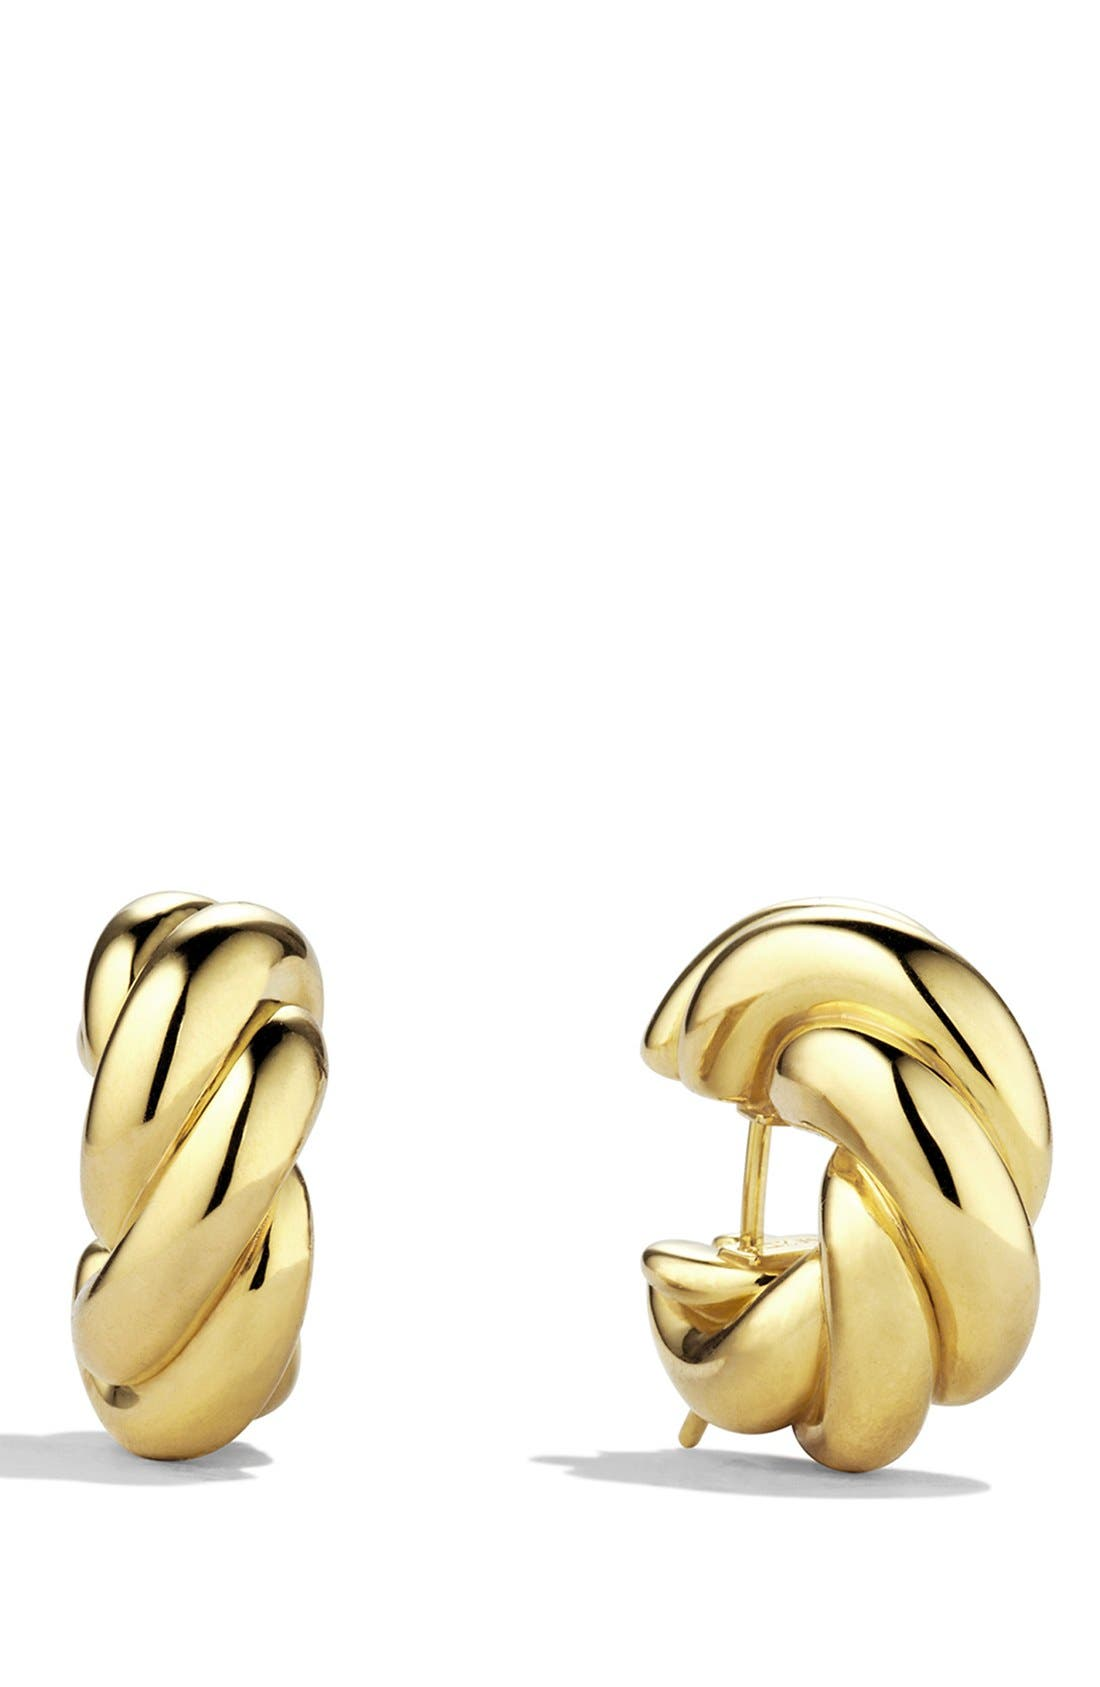 Main Image - David Yurman 'Sculpted Cable' Small Earrings in Gold